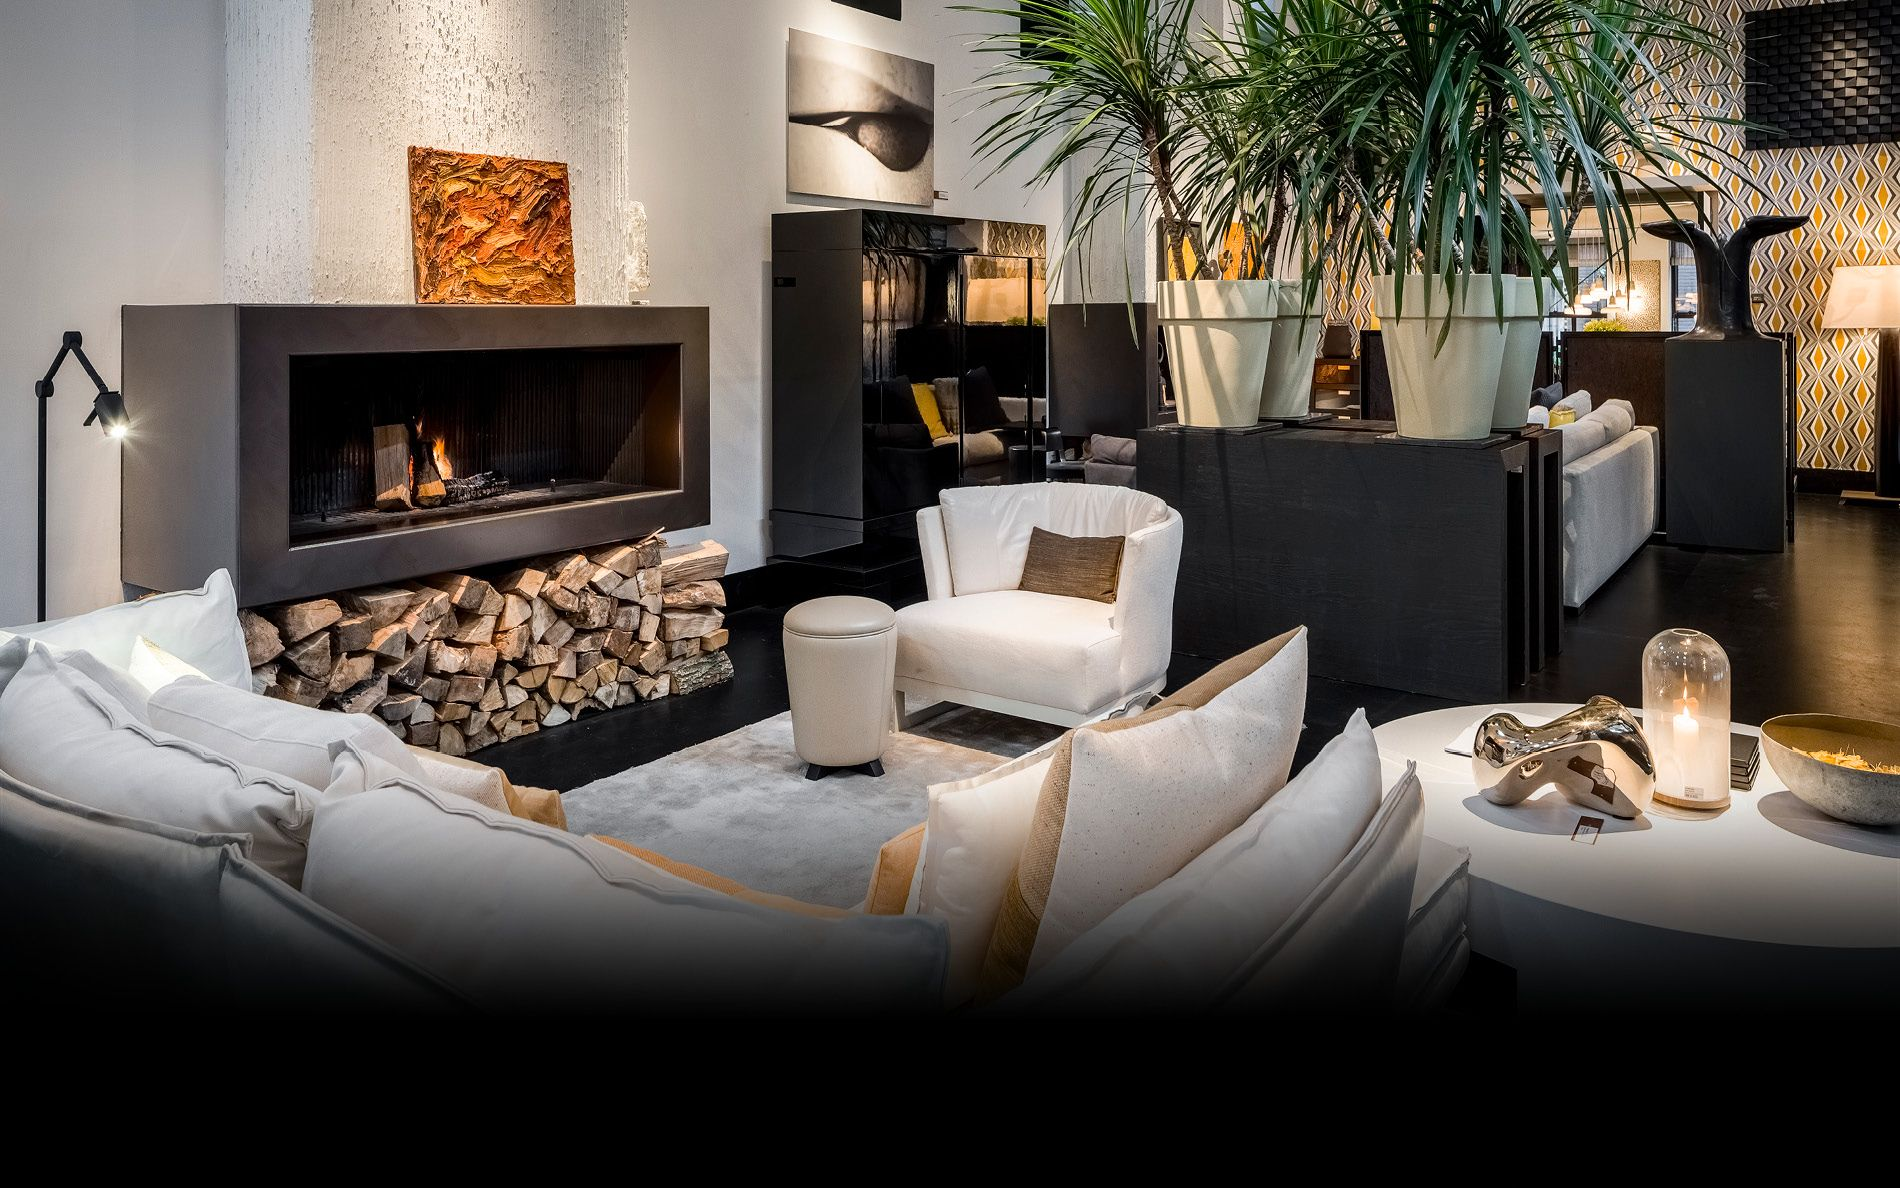 Wolterinck Laren | Designing your world | Luxe leven ... on Outdoor Living Shops Near Me id=46889